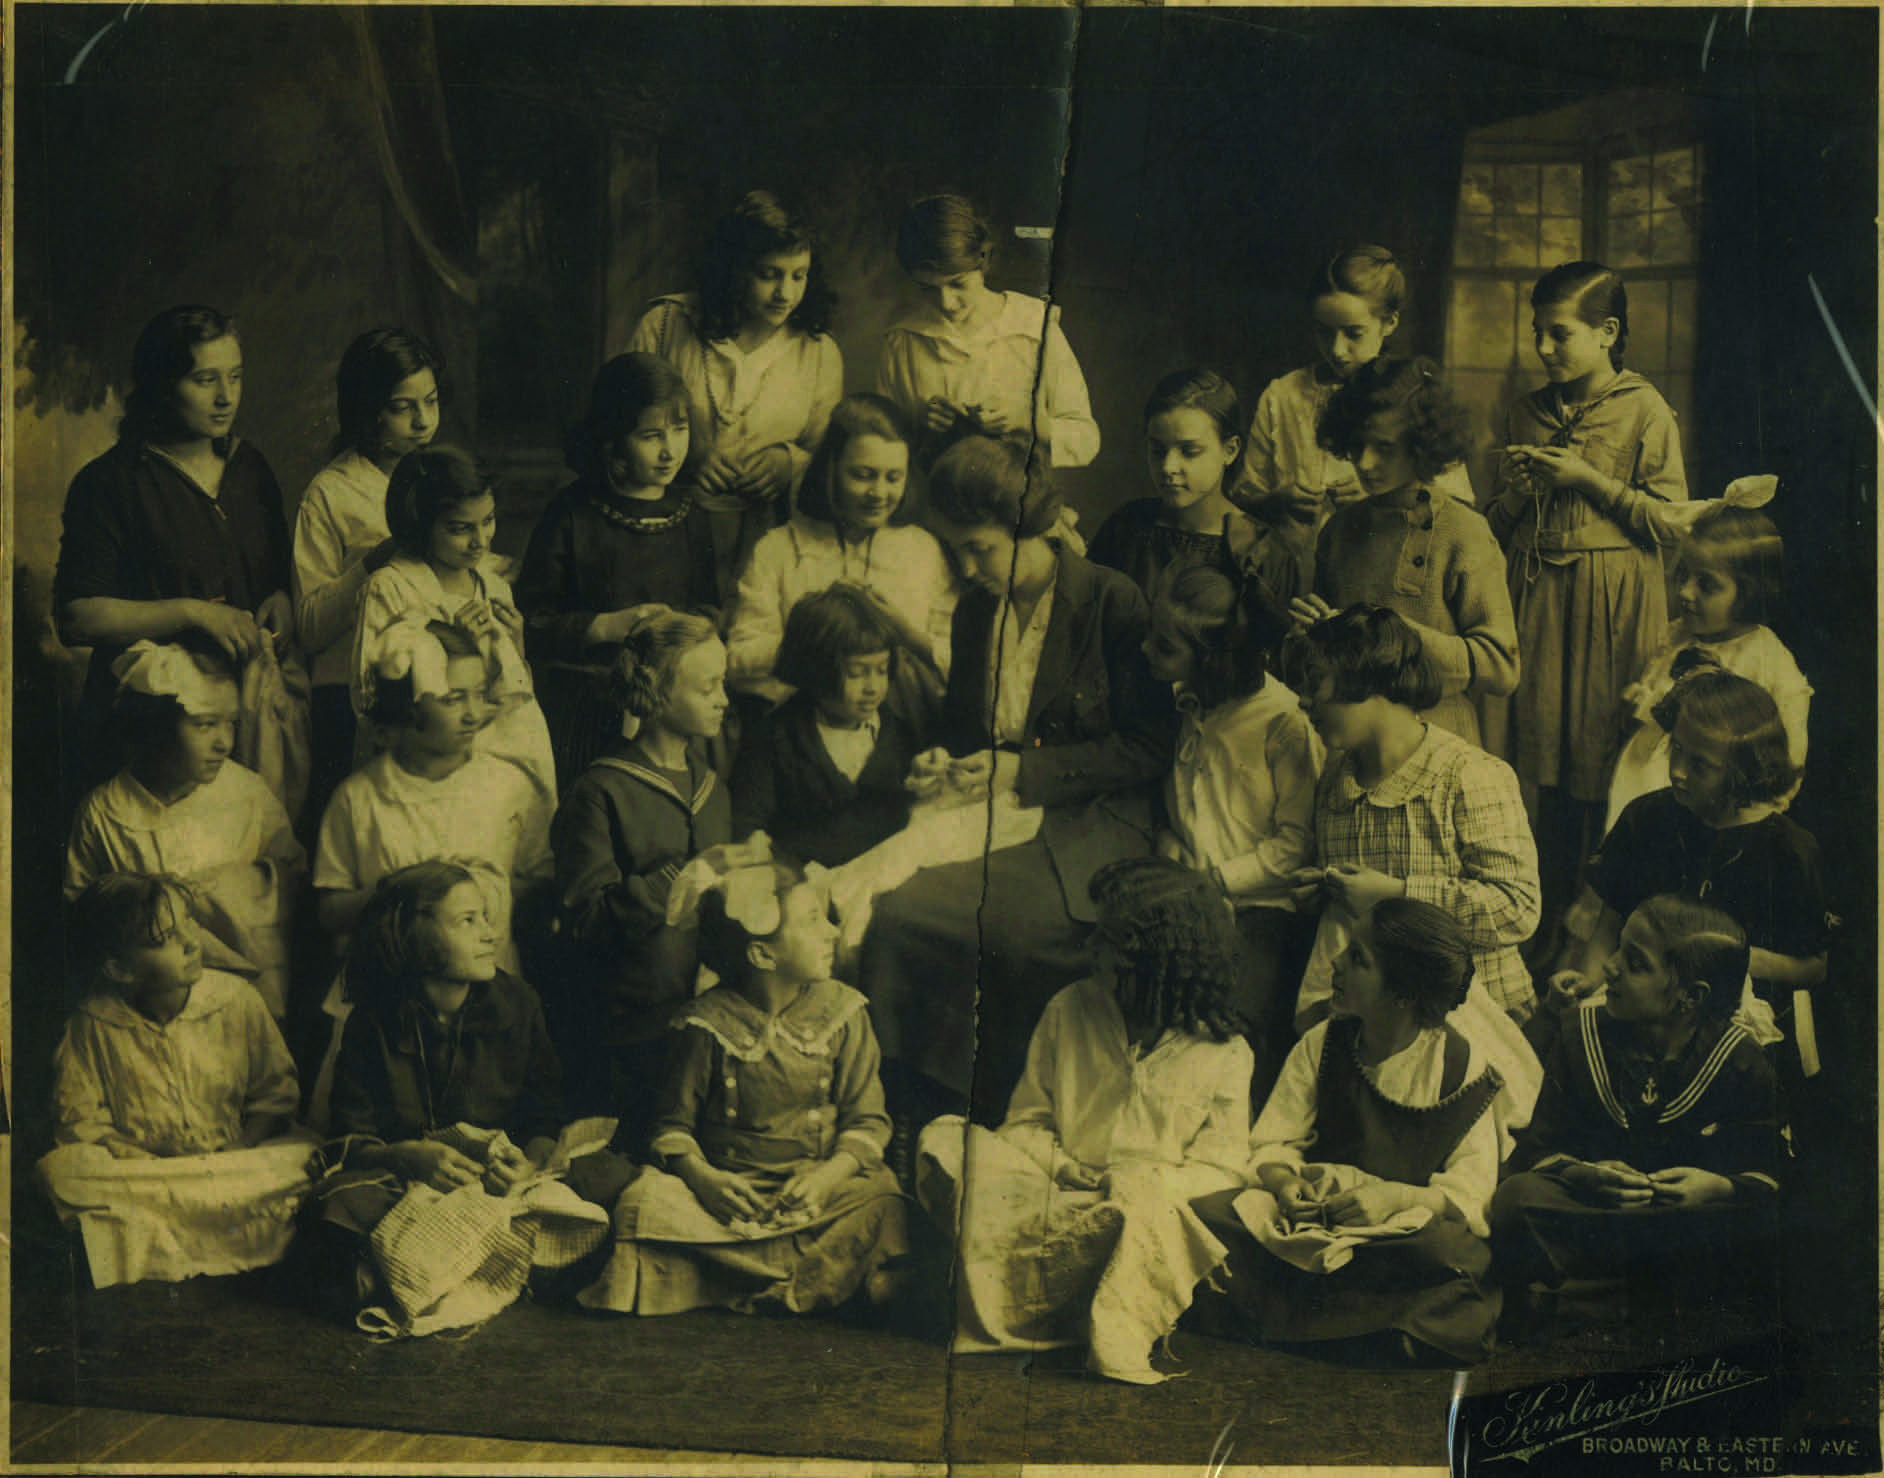 A sewing class of St. Leo's. Rosa, John Pente's sister, is pictured on the bottom row, third from the left.